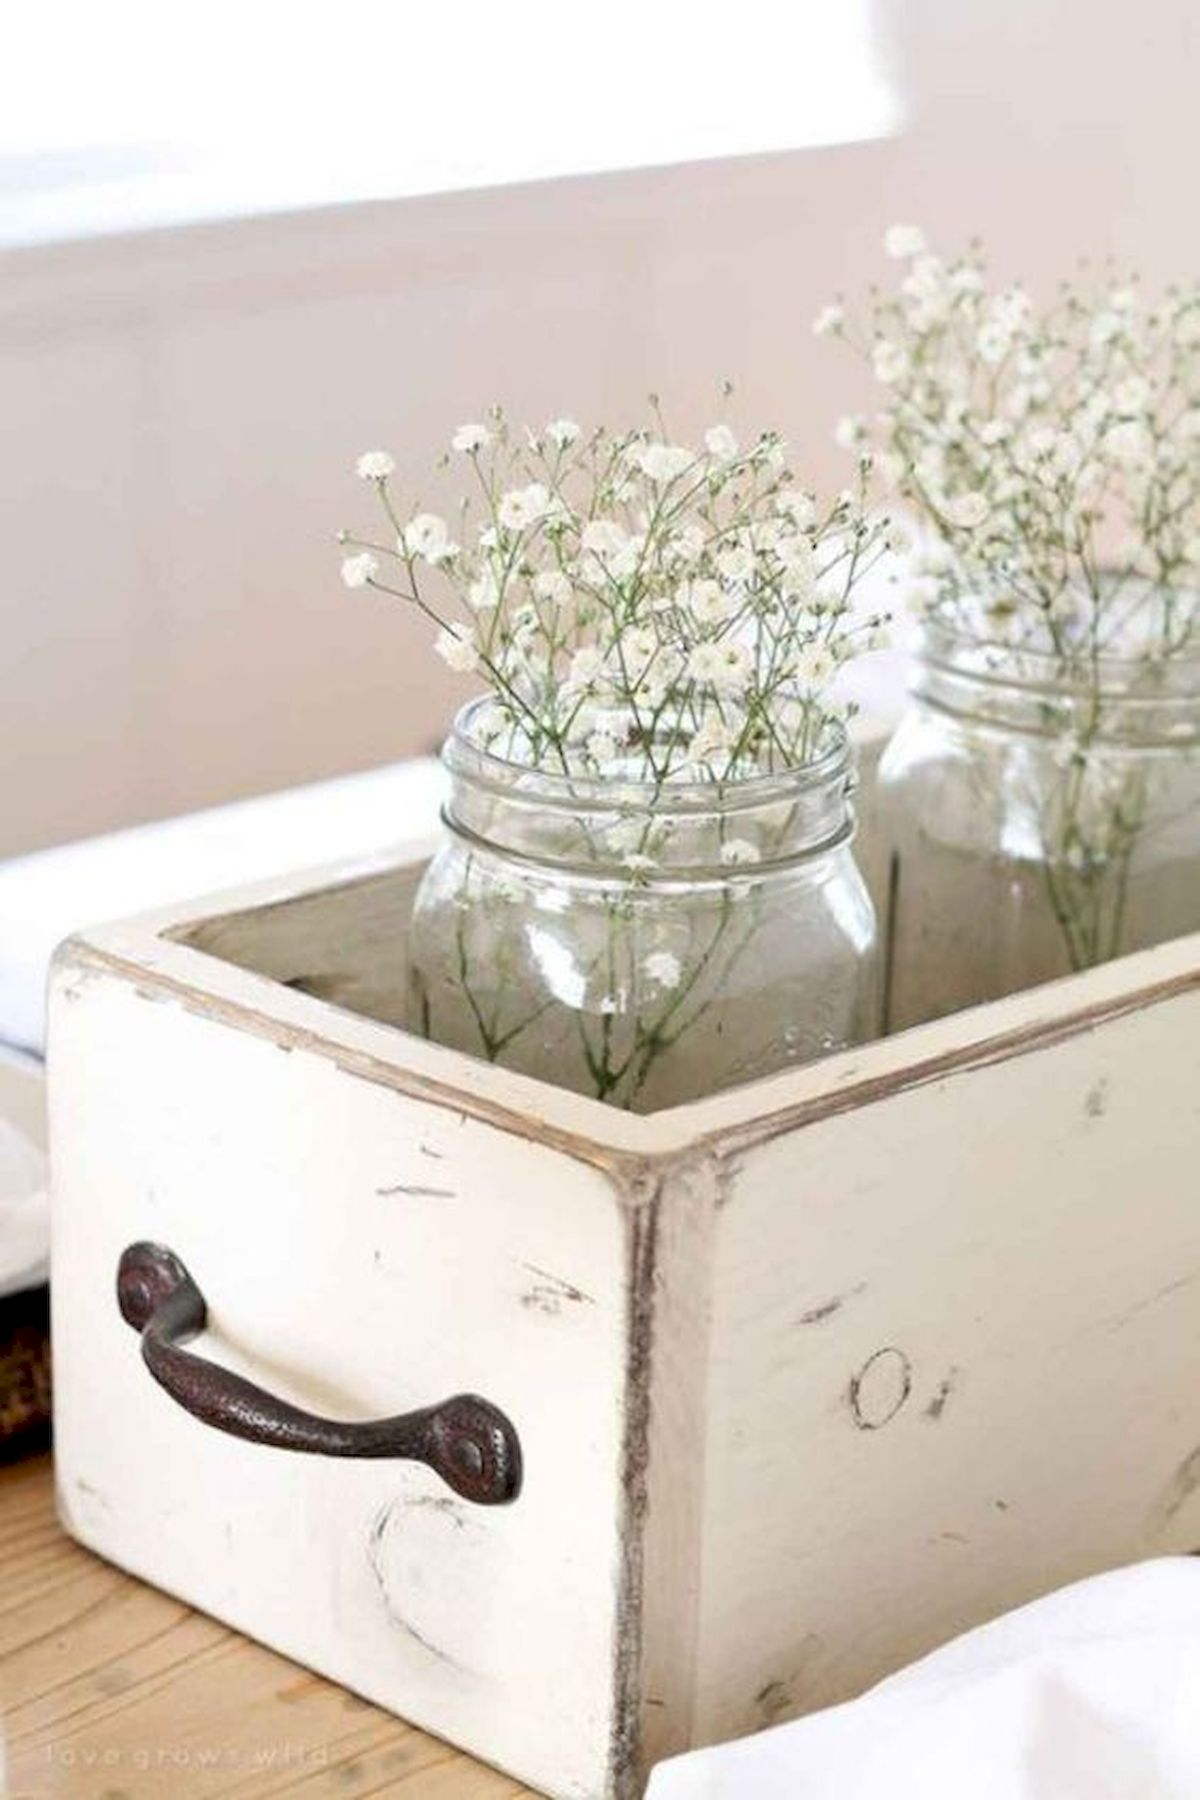 55 Fantastic Farmhouse Decor Ideas On A Budget (51)